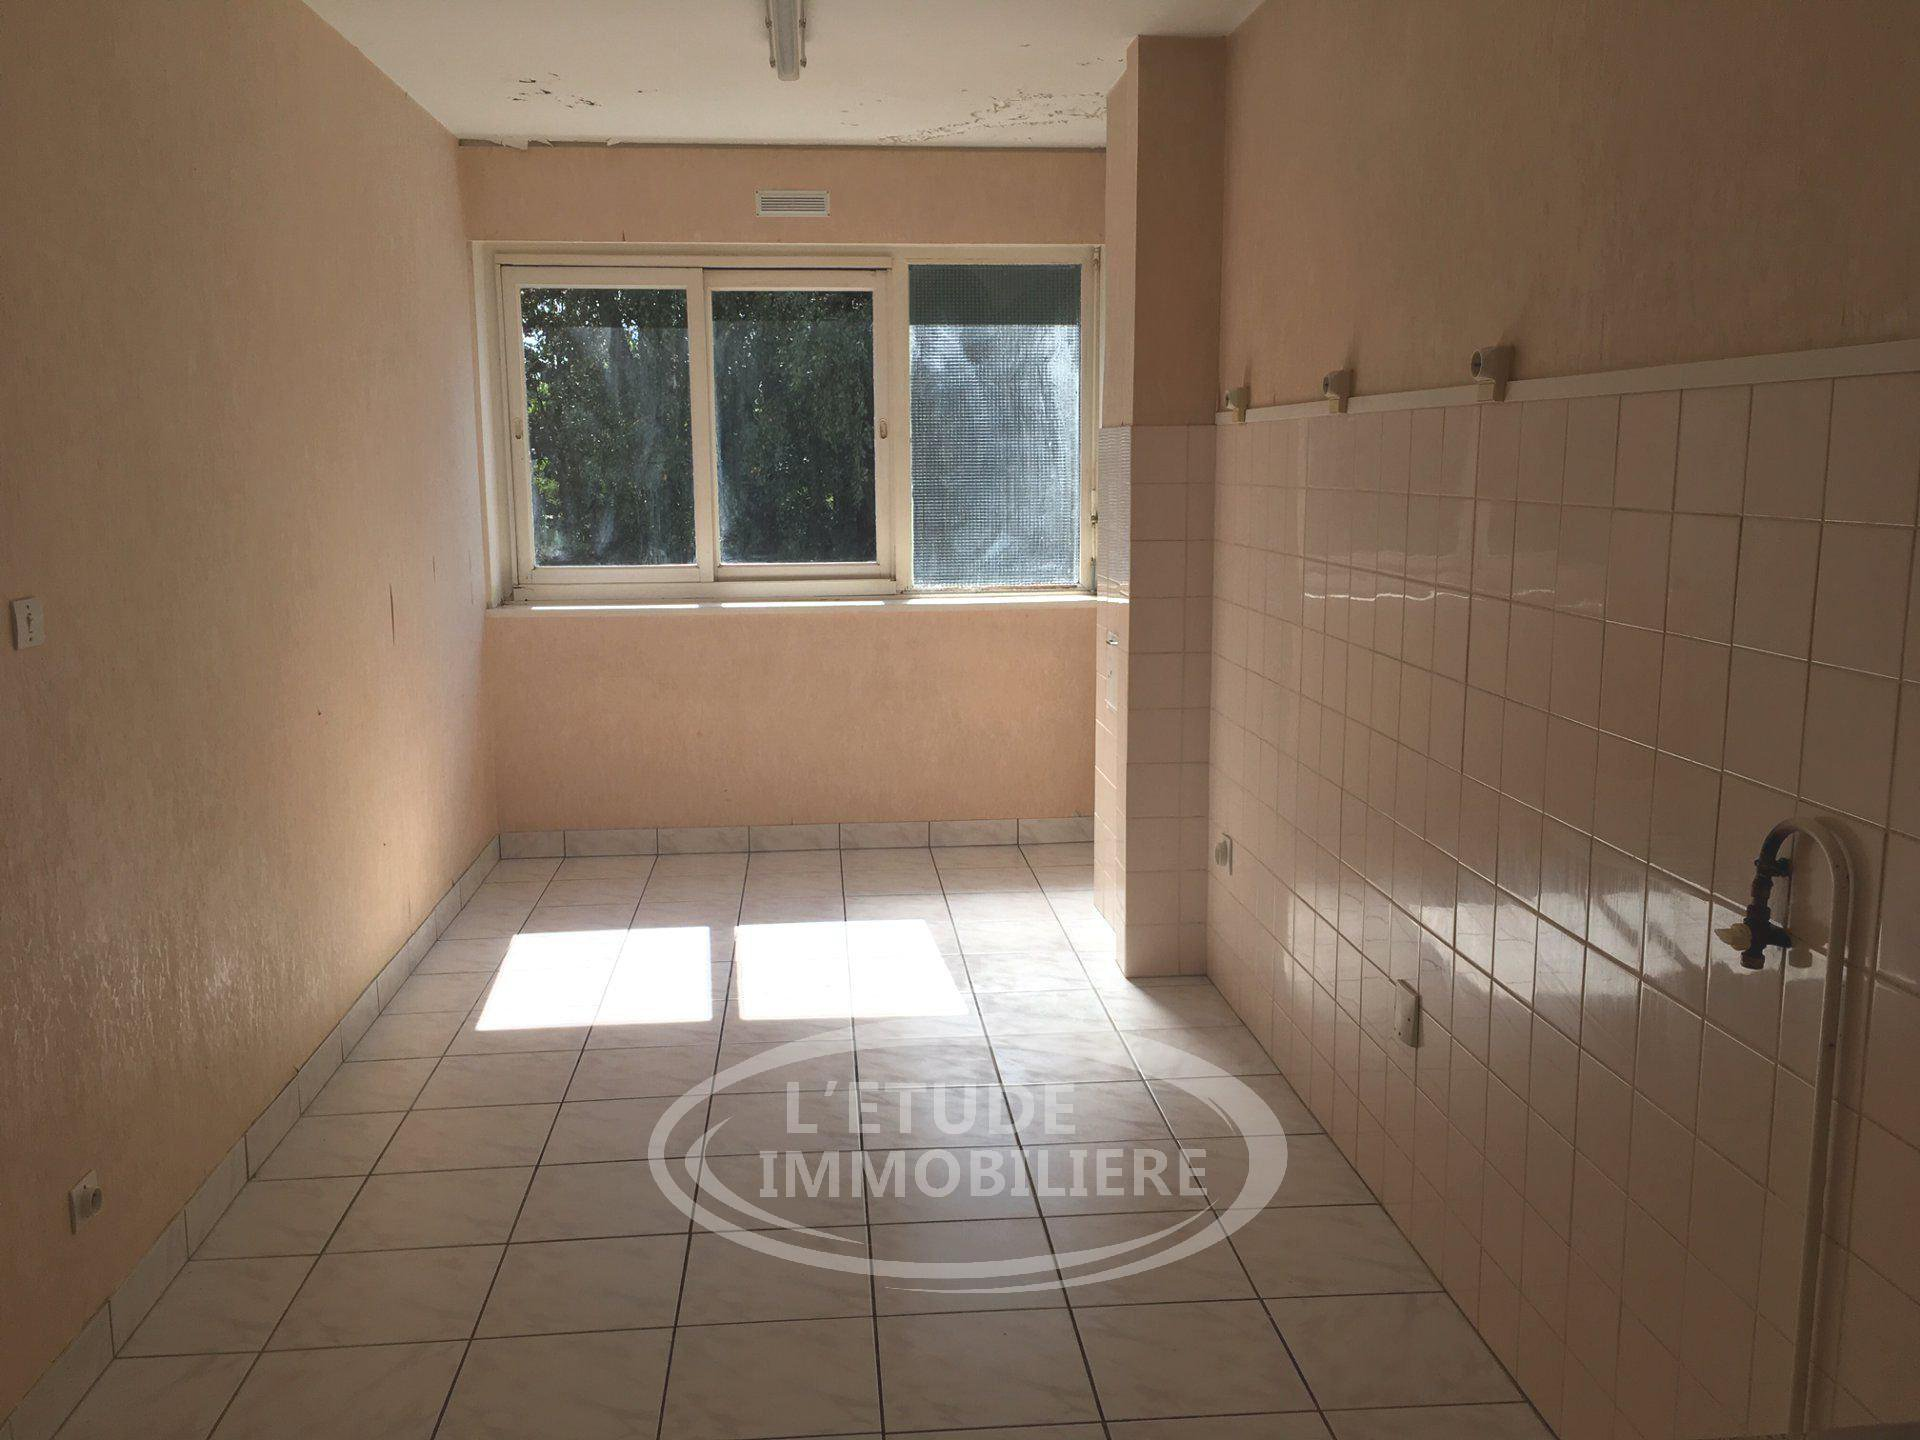 Orvault : Appartement 4 chambres  au pied du tramway